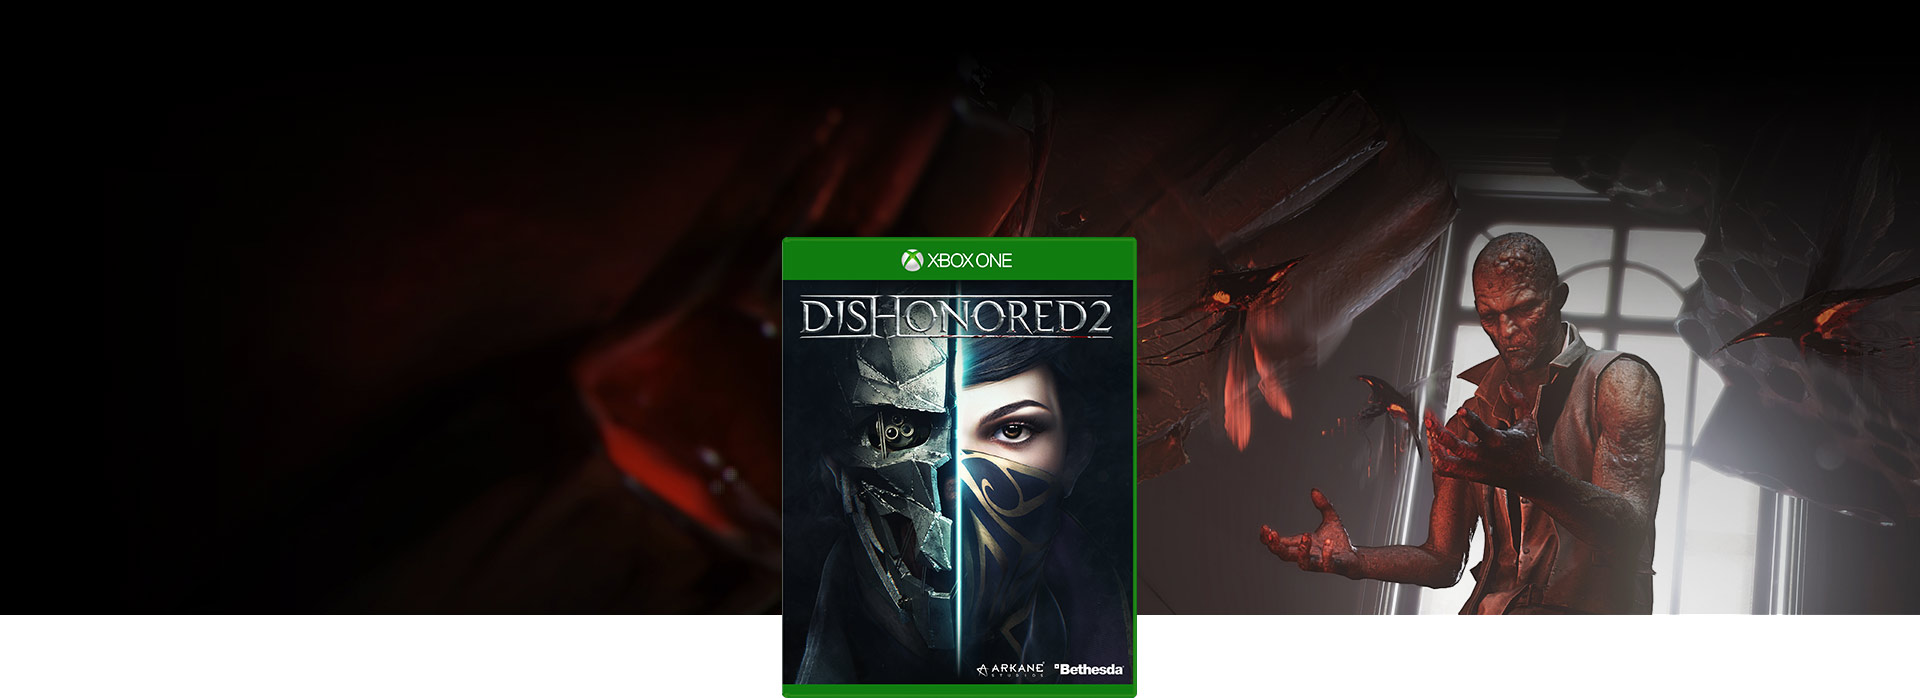 Dishonored 2 - boxshot